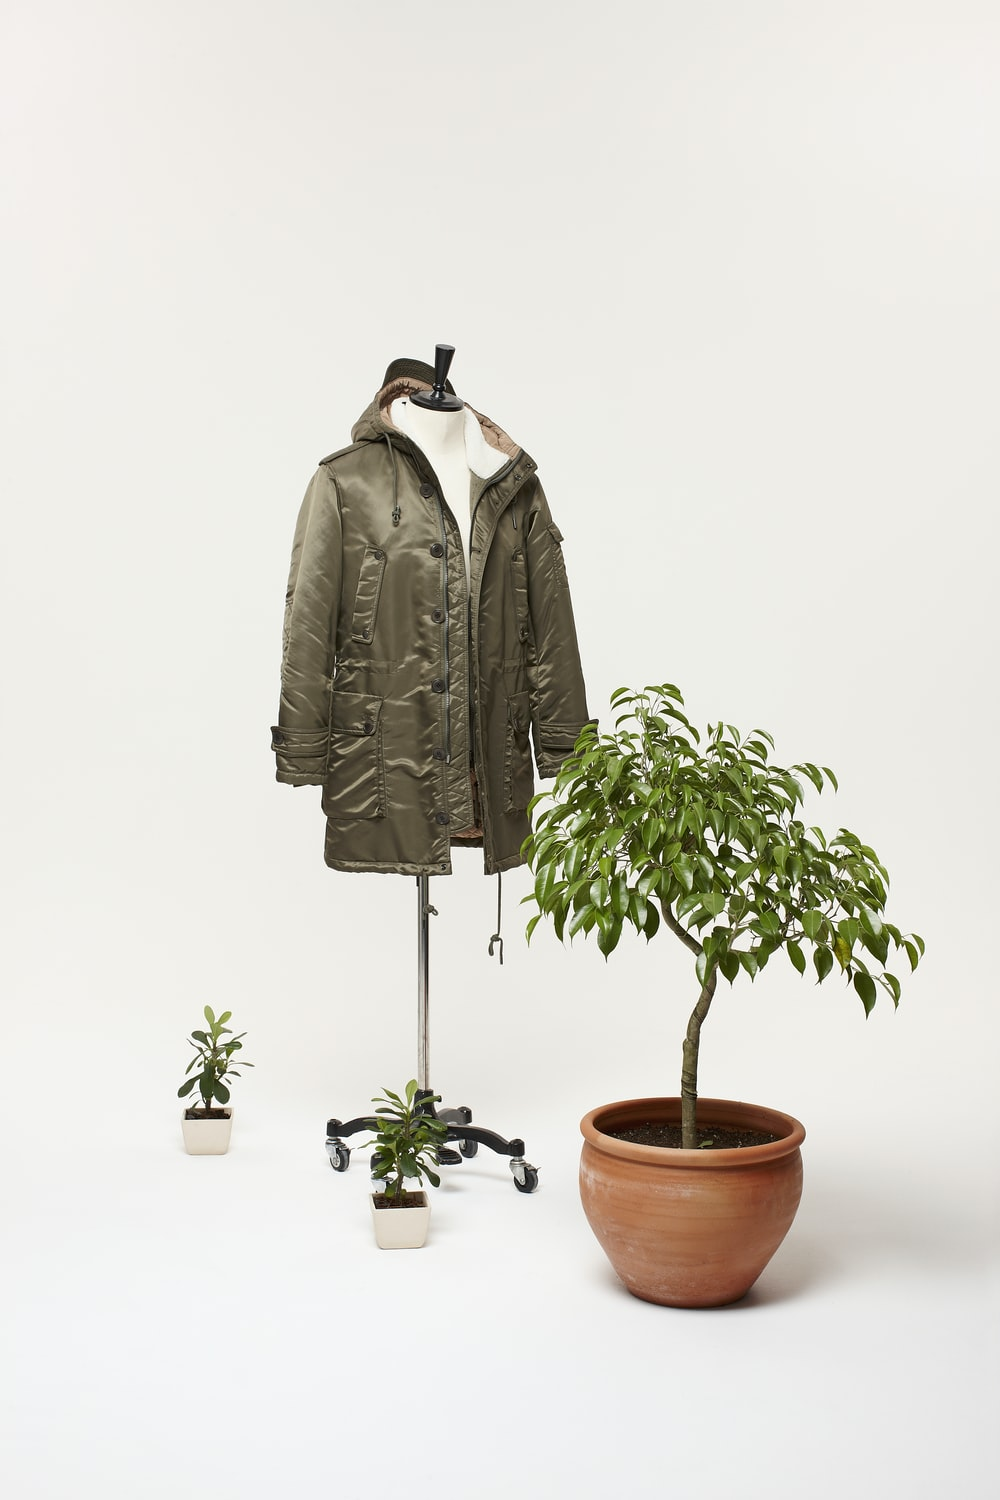 brown jacket beside green plant